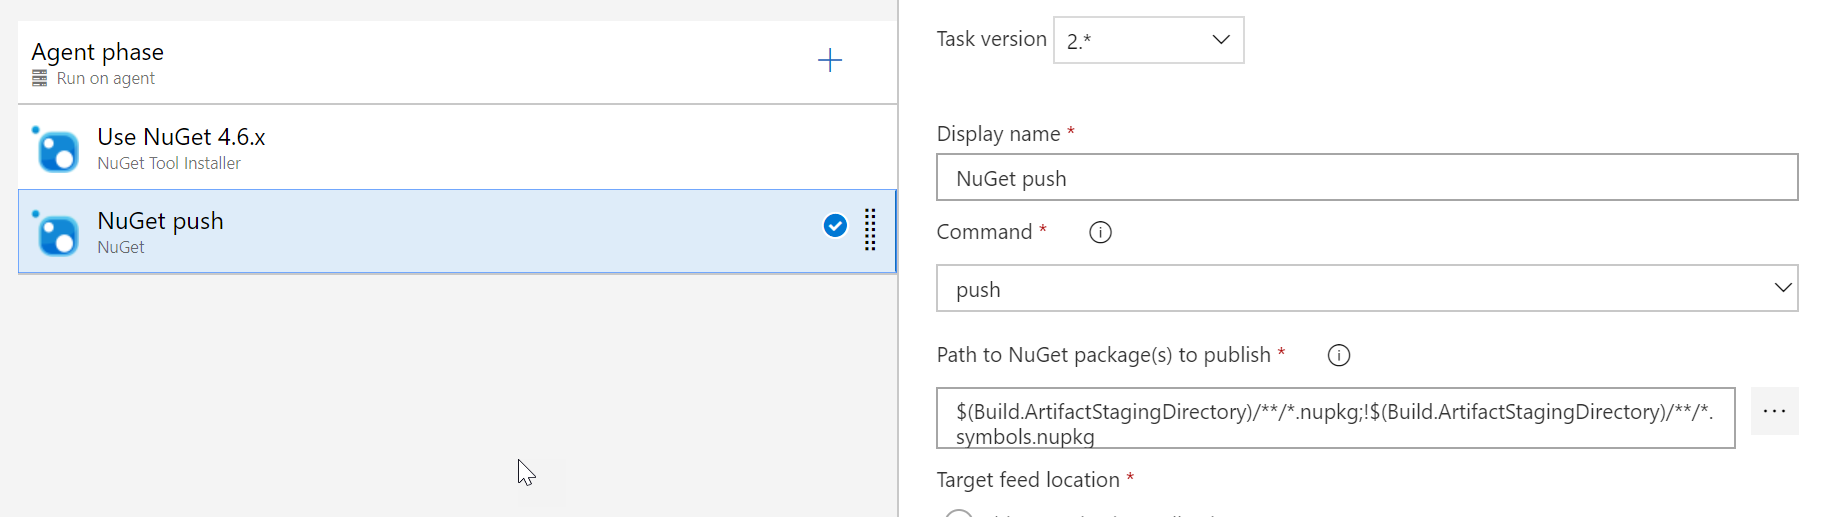 Screenshot of Azure DevOps NuGet Push definition